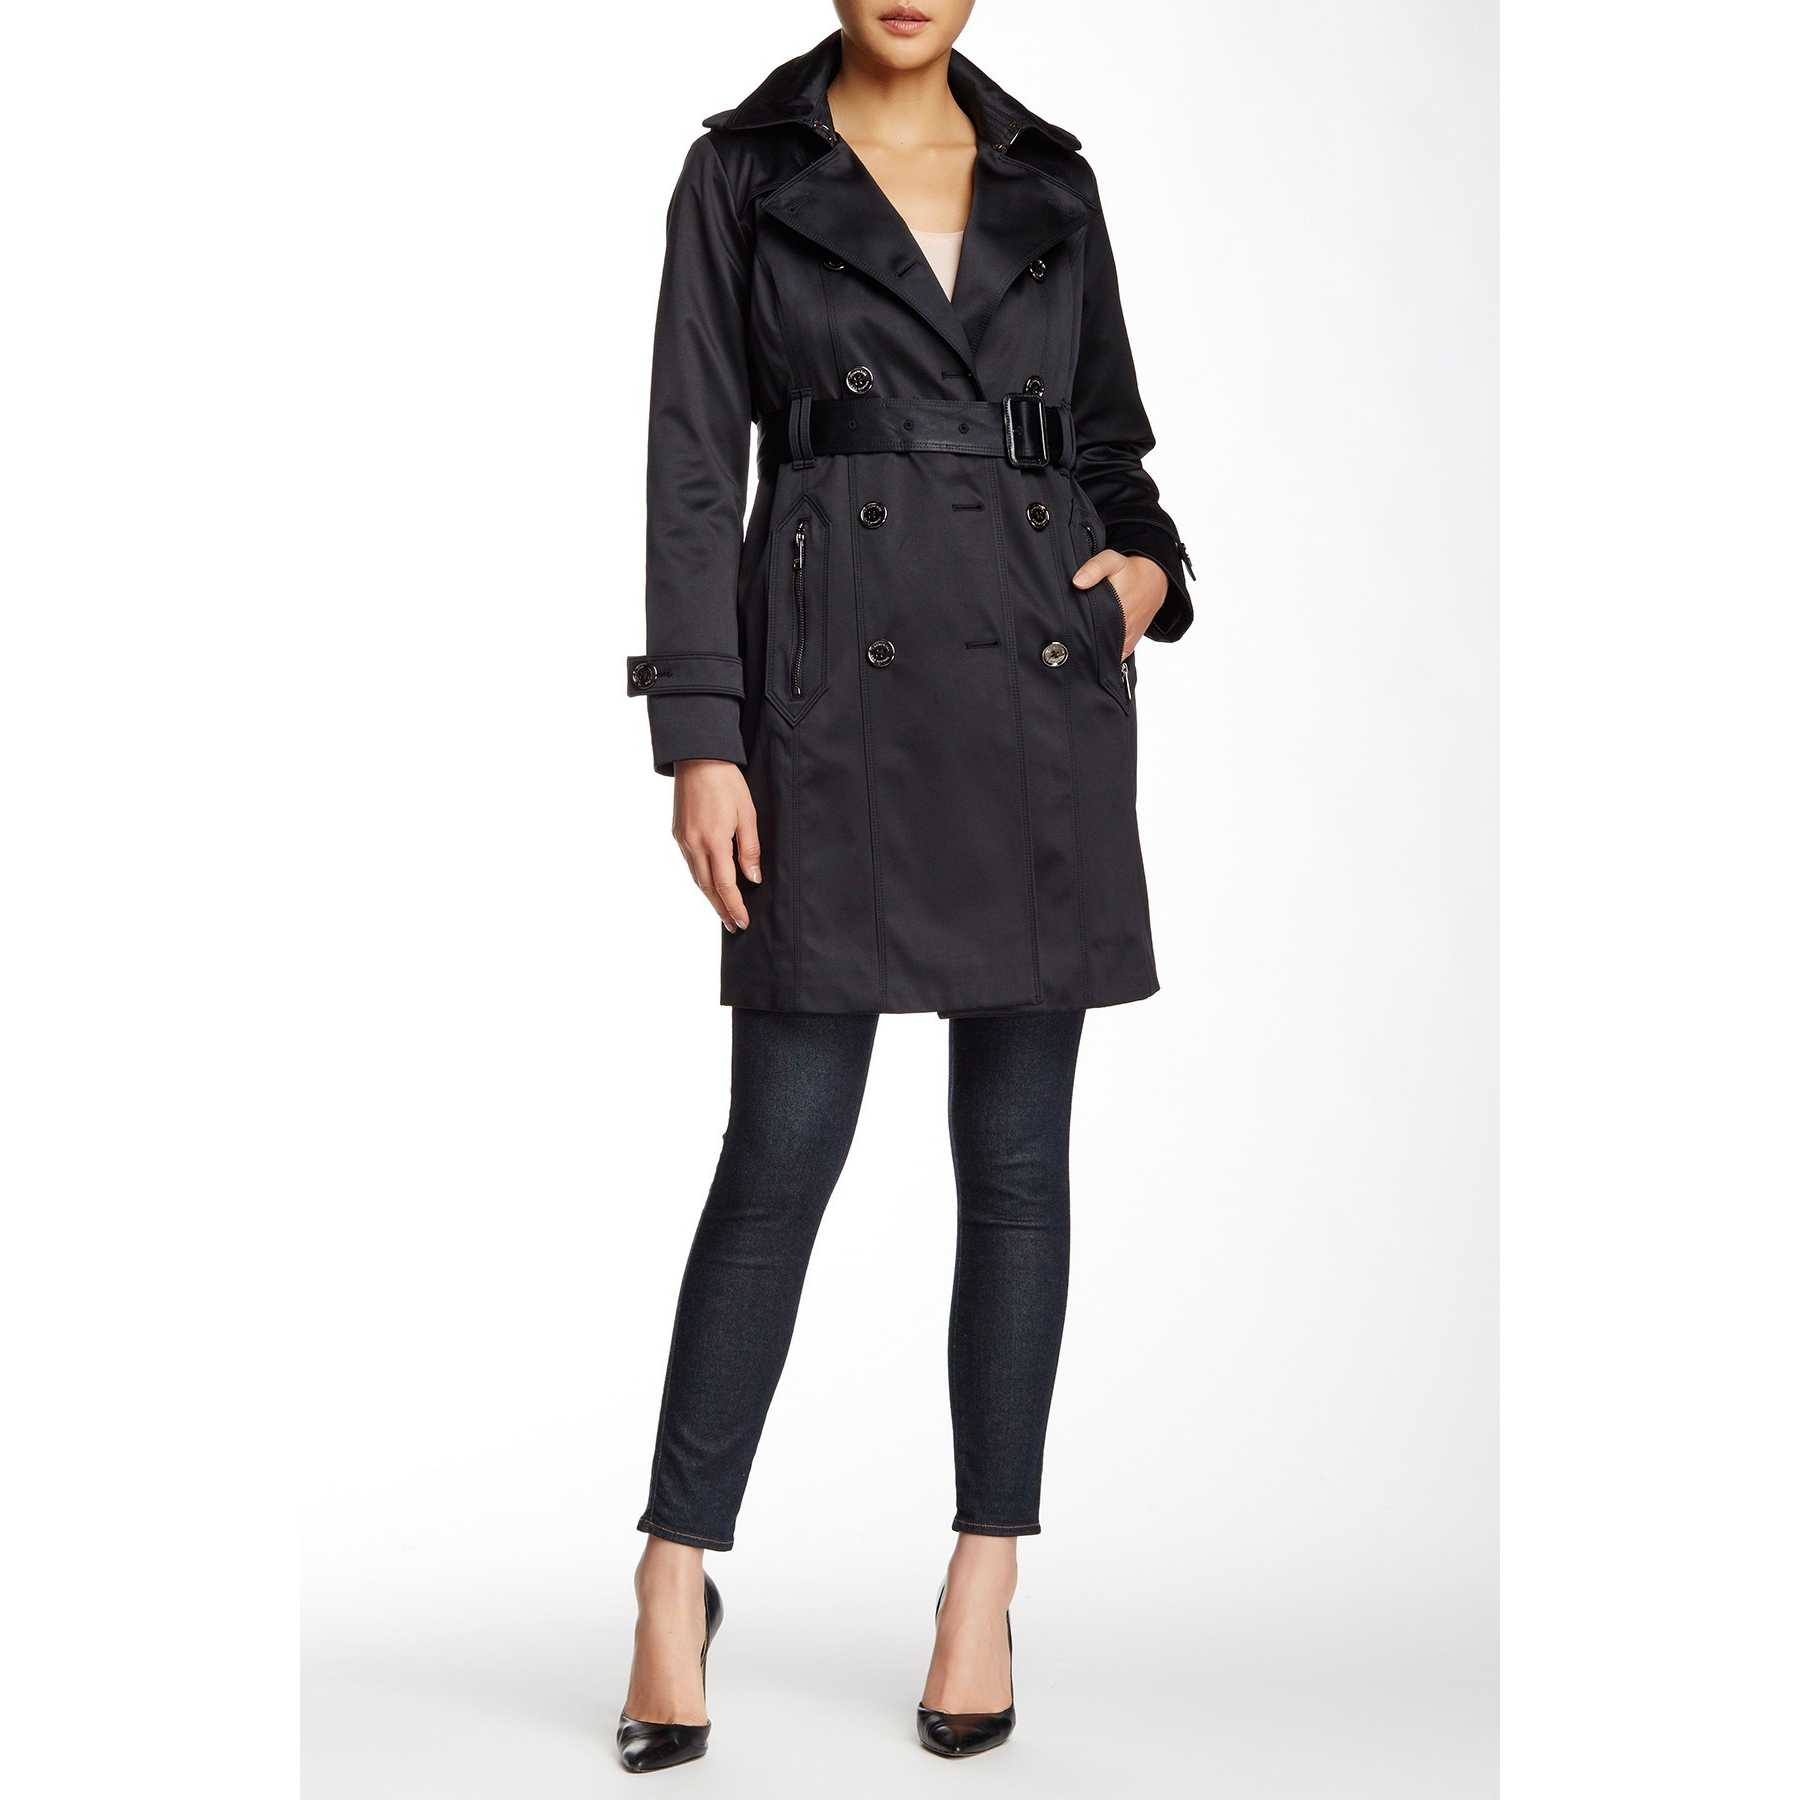 London Fog Water Repellent Double Breasted Trench Coat (Petite) BLACK trench dama